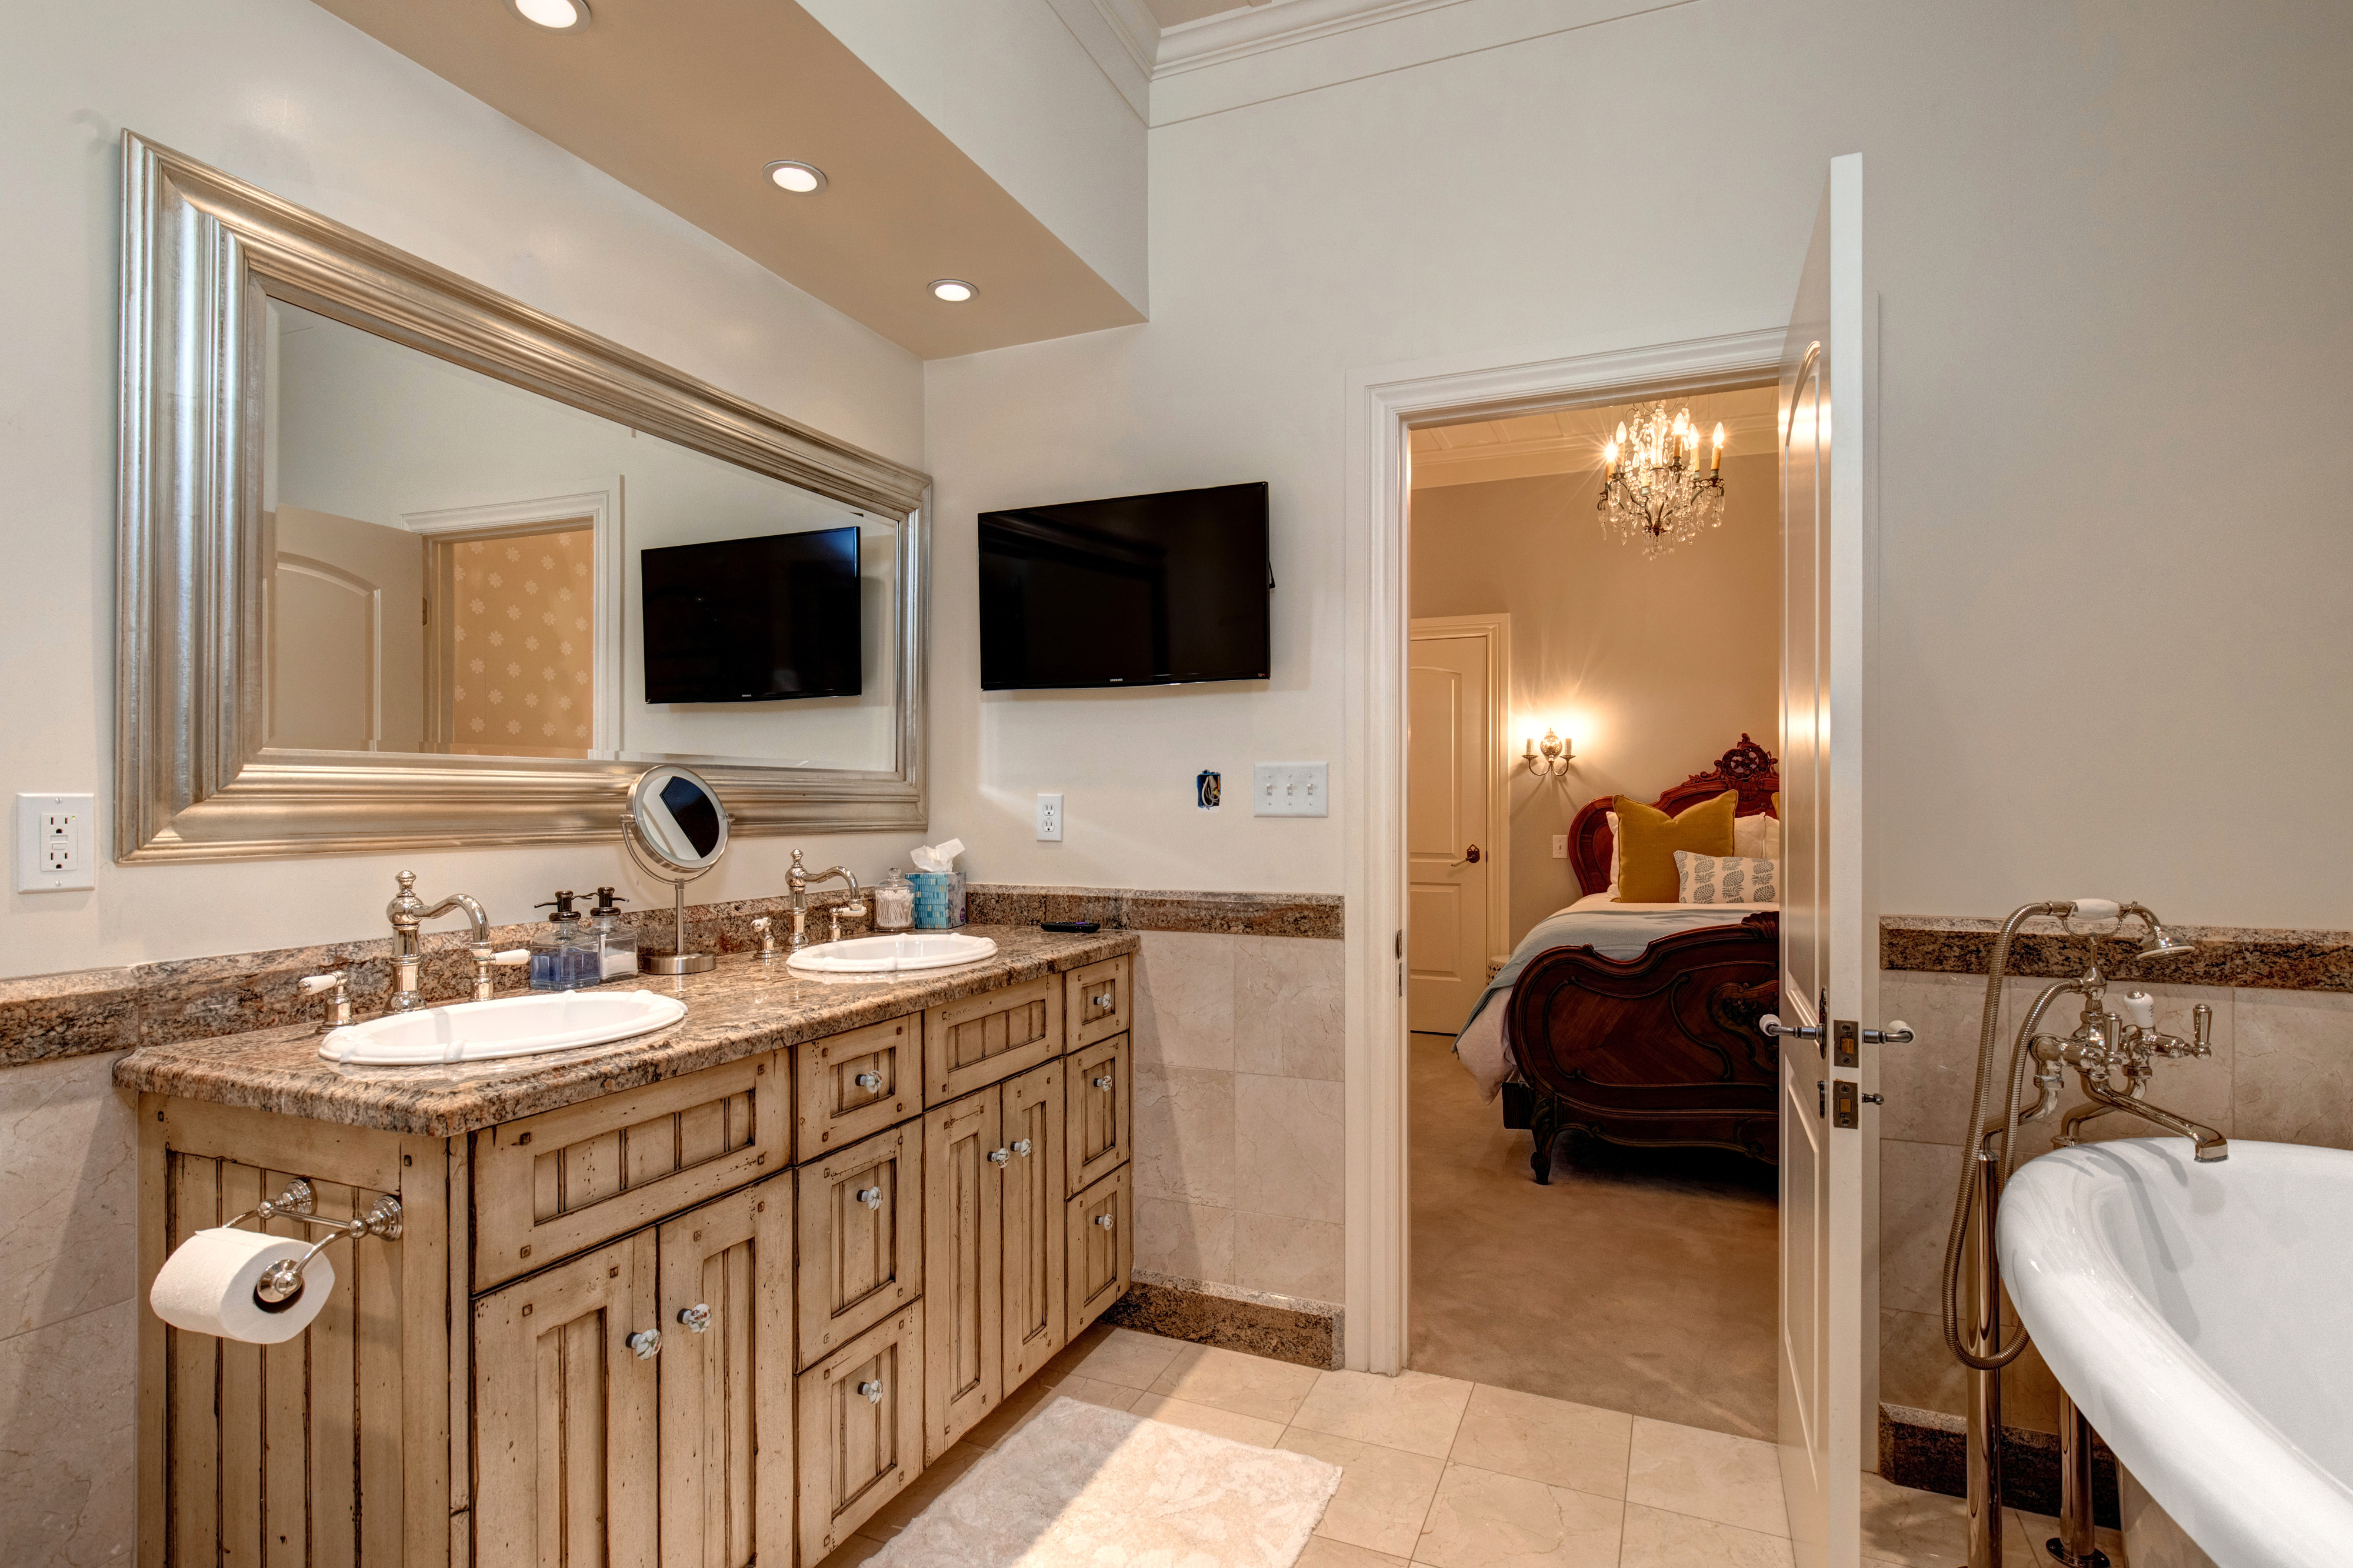 Abode luxury rentals park city heirloom house interior master bathroom 1 2